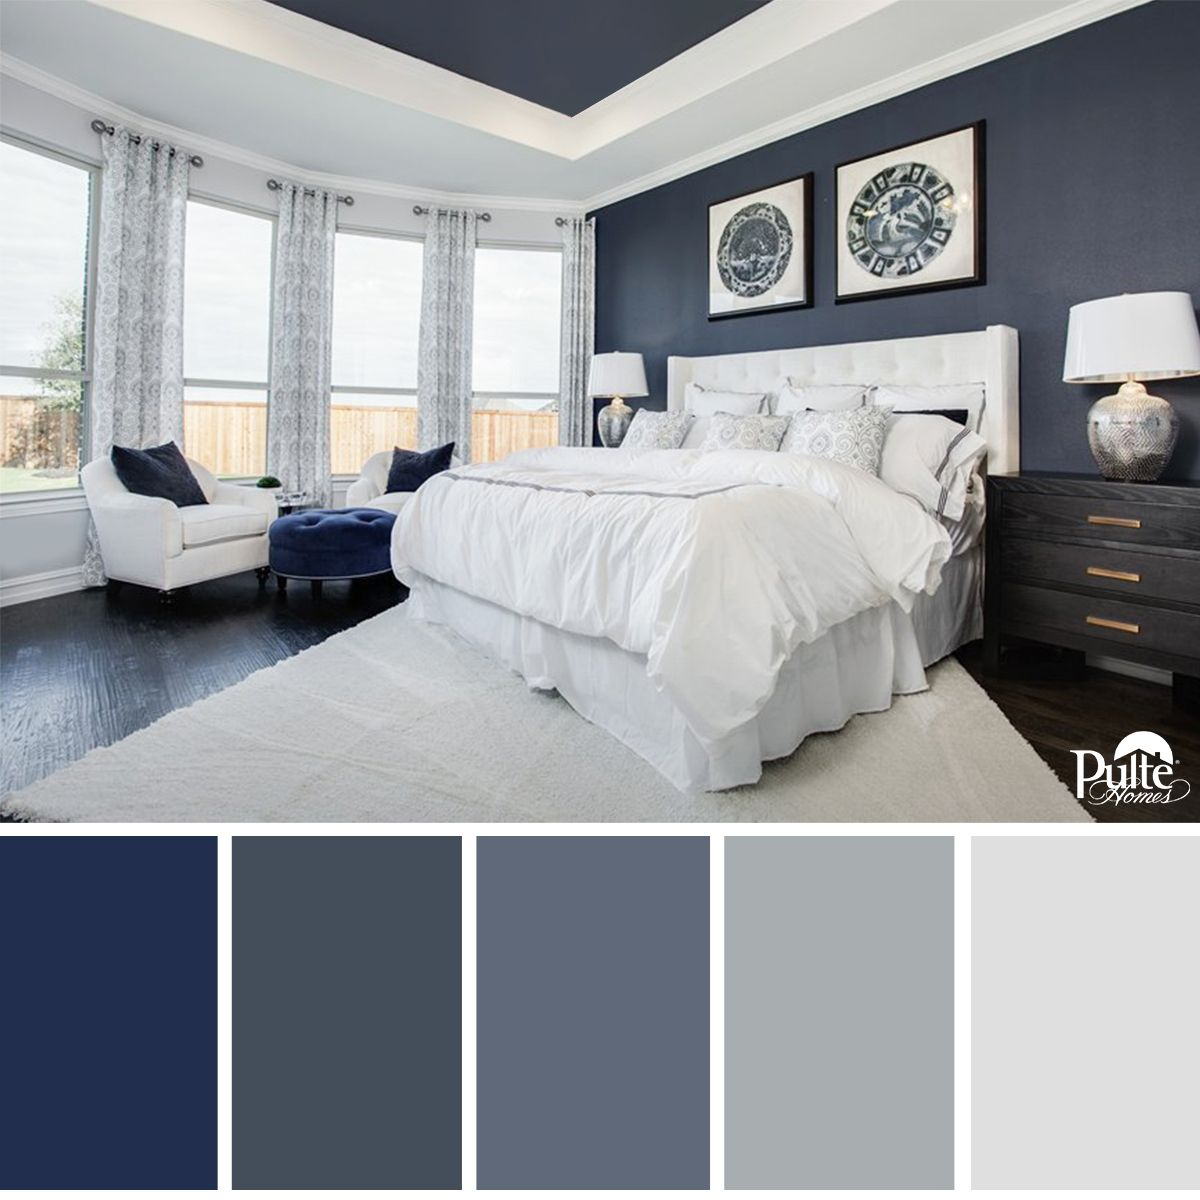 Bedroom Color Schemes With Gray Images Of Bedroom Colors Paint Ideas For Master Bedroom And Bath Bedroom Ideas Accent Wall